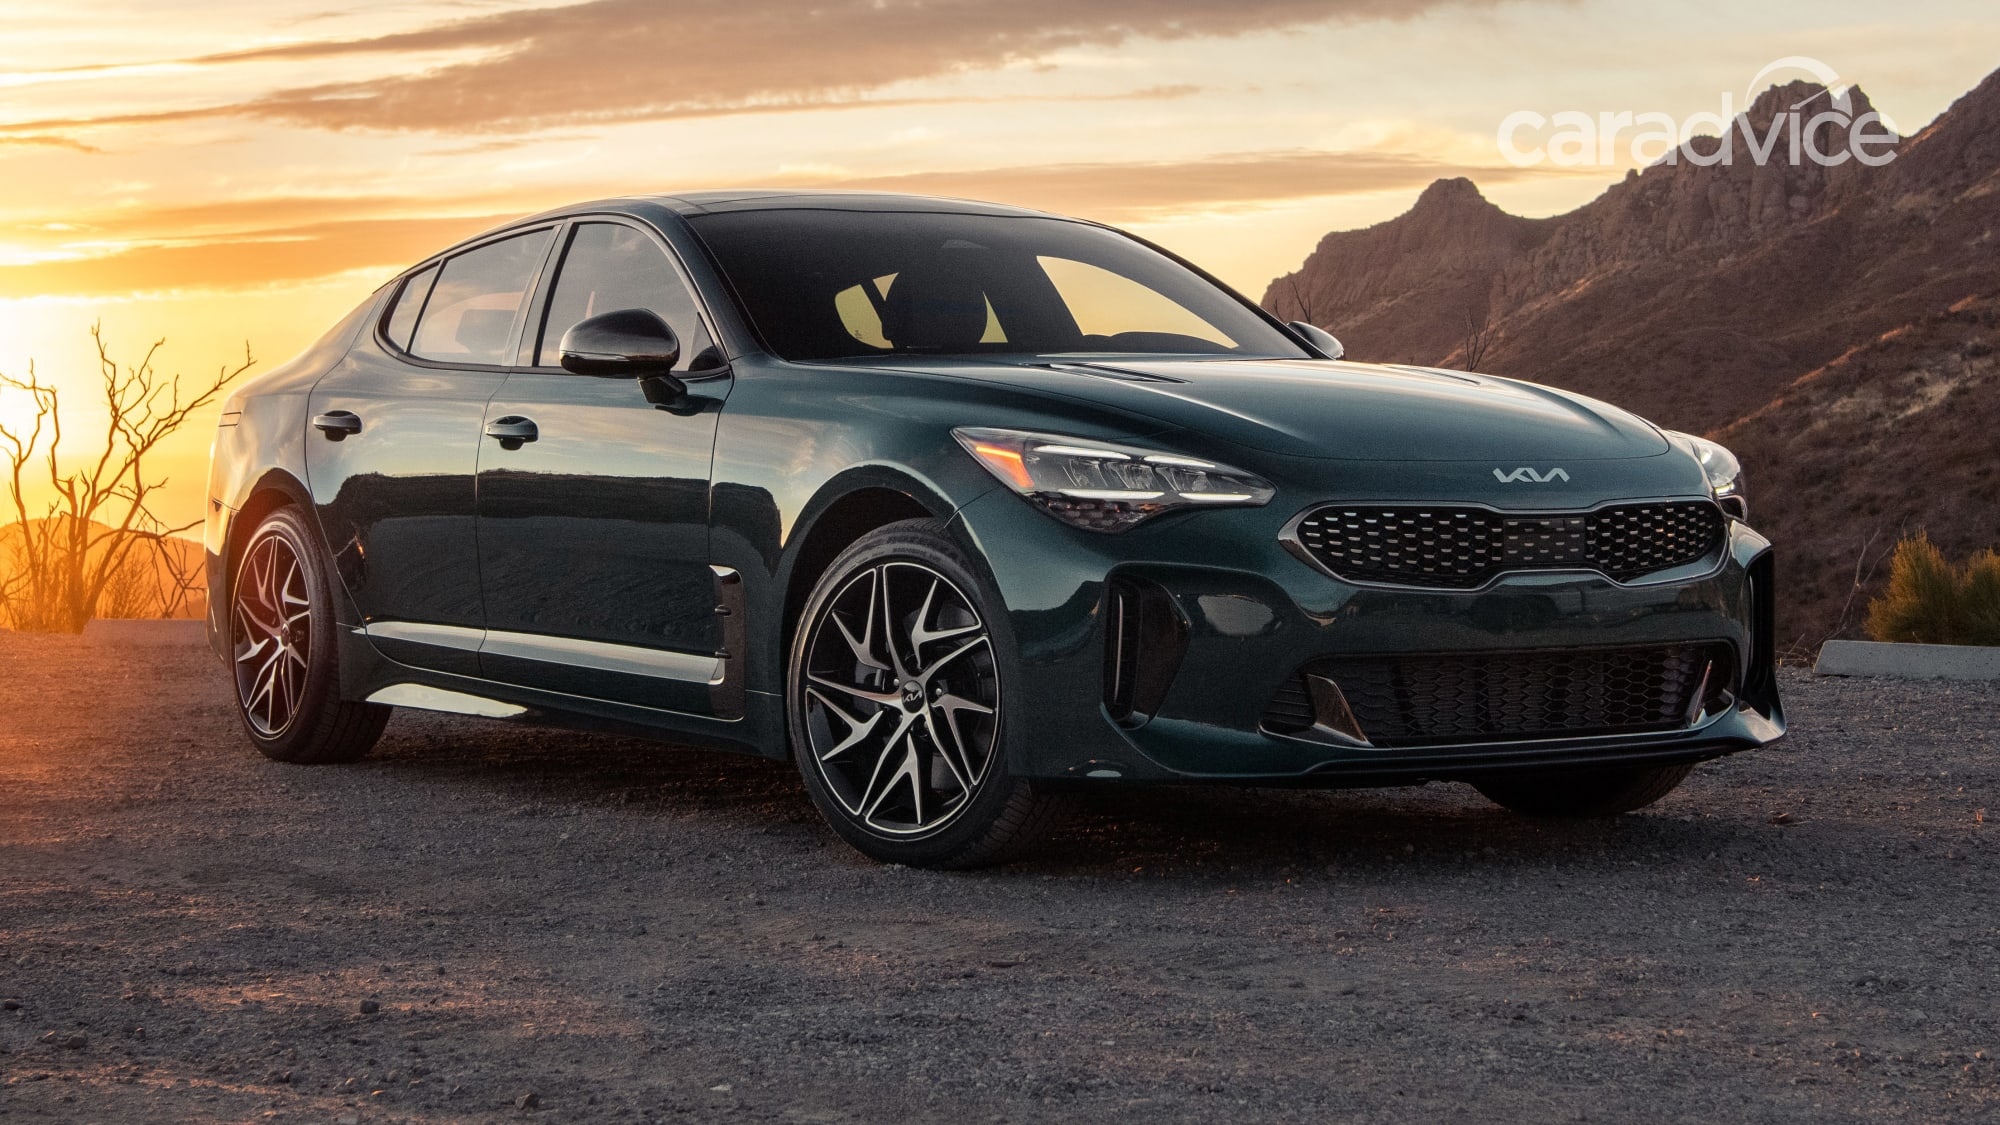 2021 Kia Stinger: 2.5-litre turbo engine ruled out for Australia